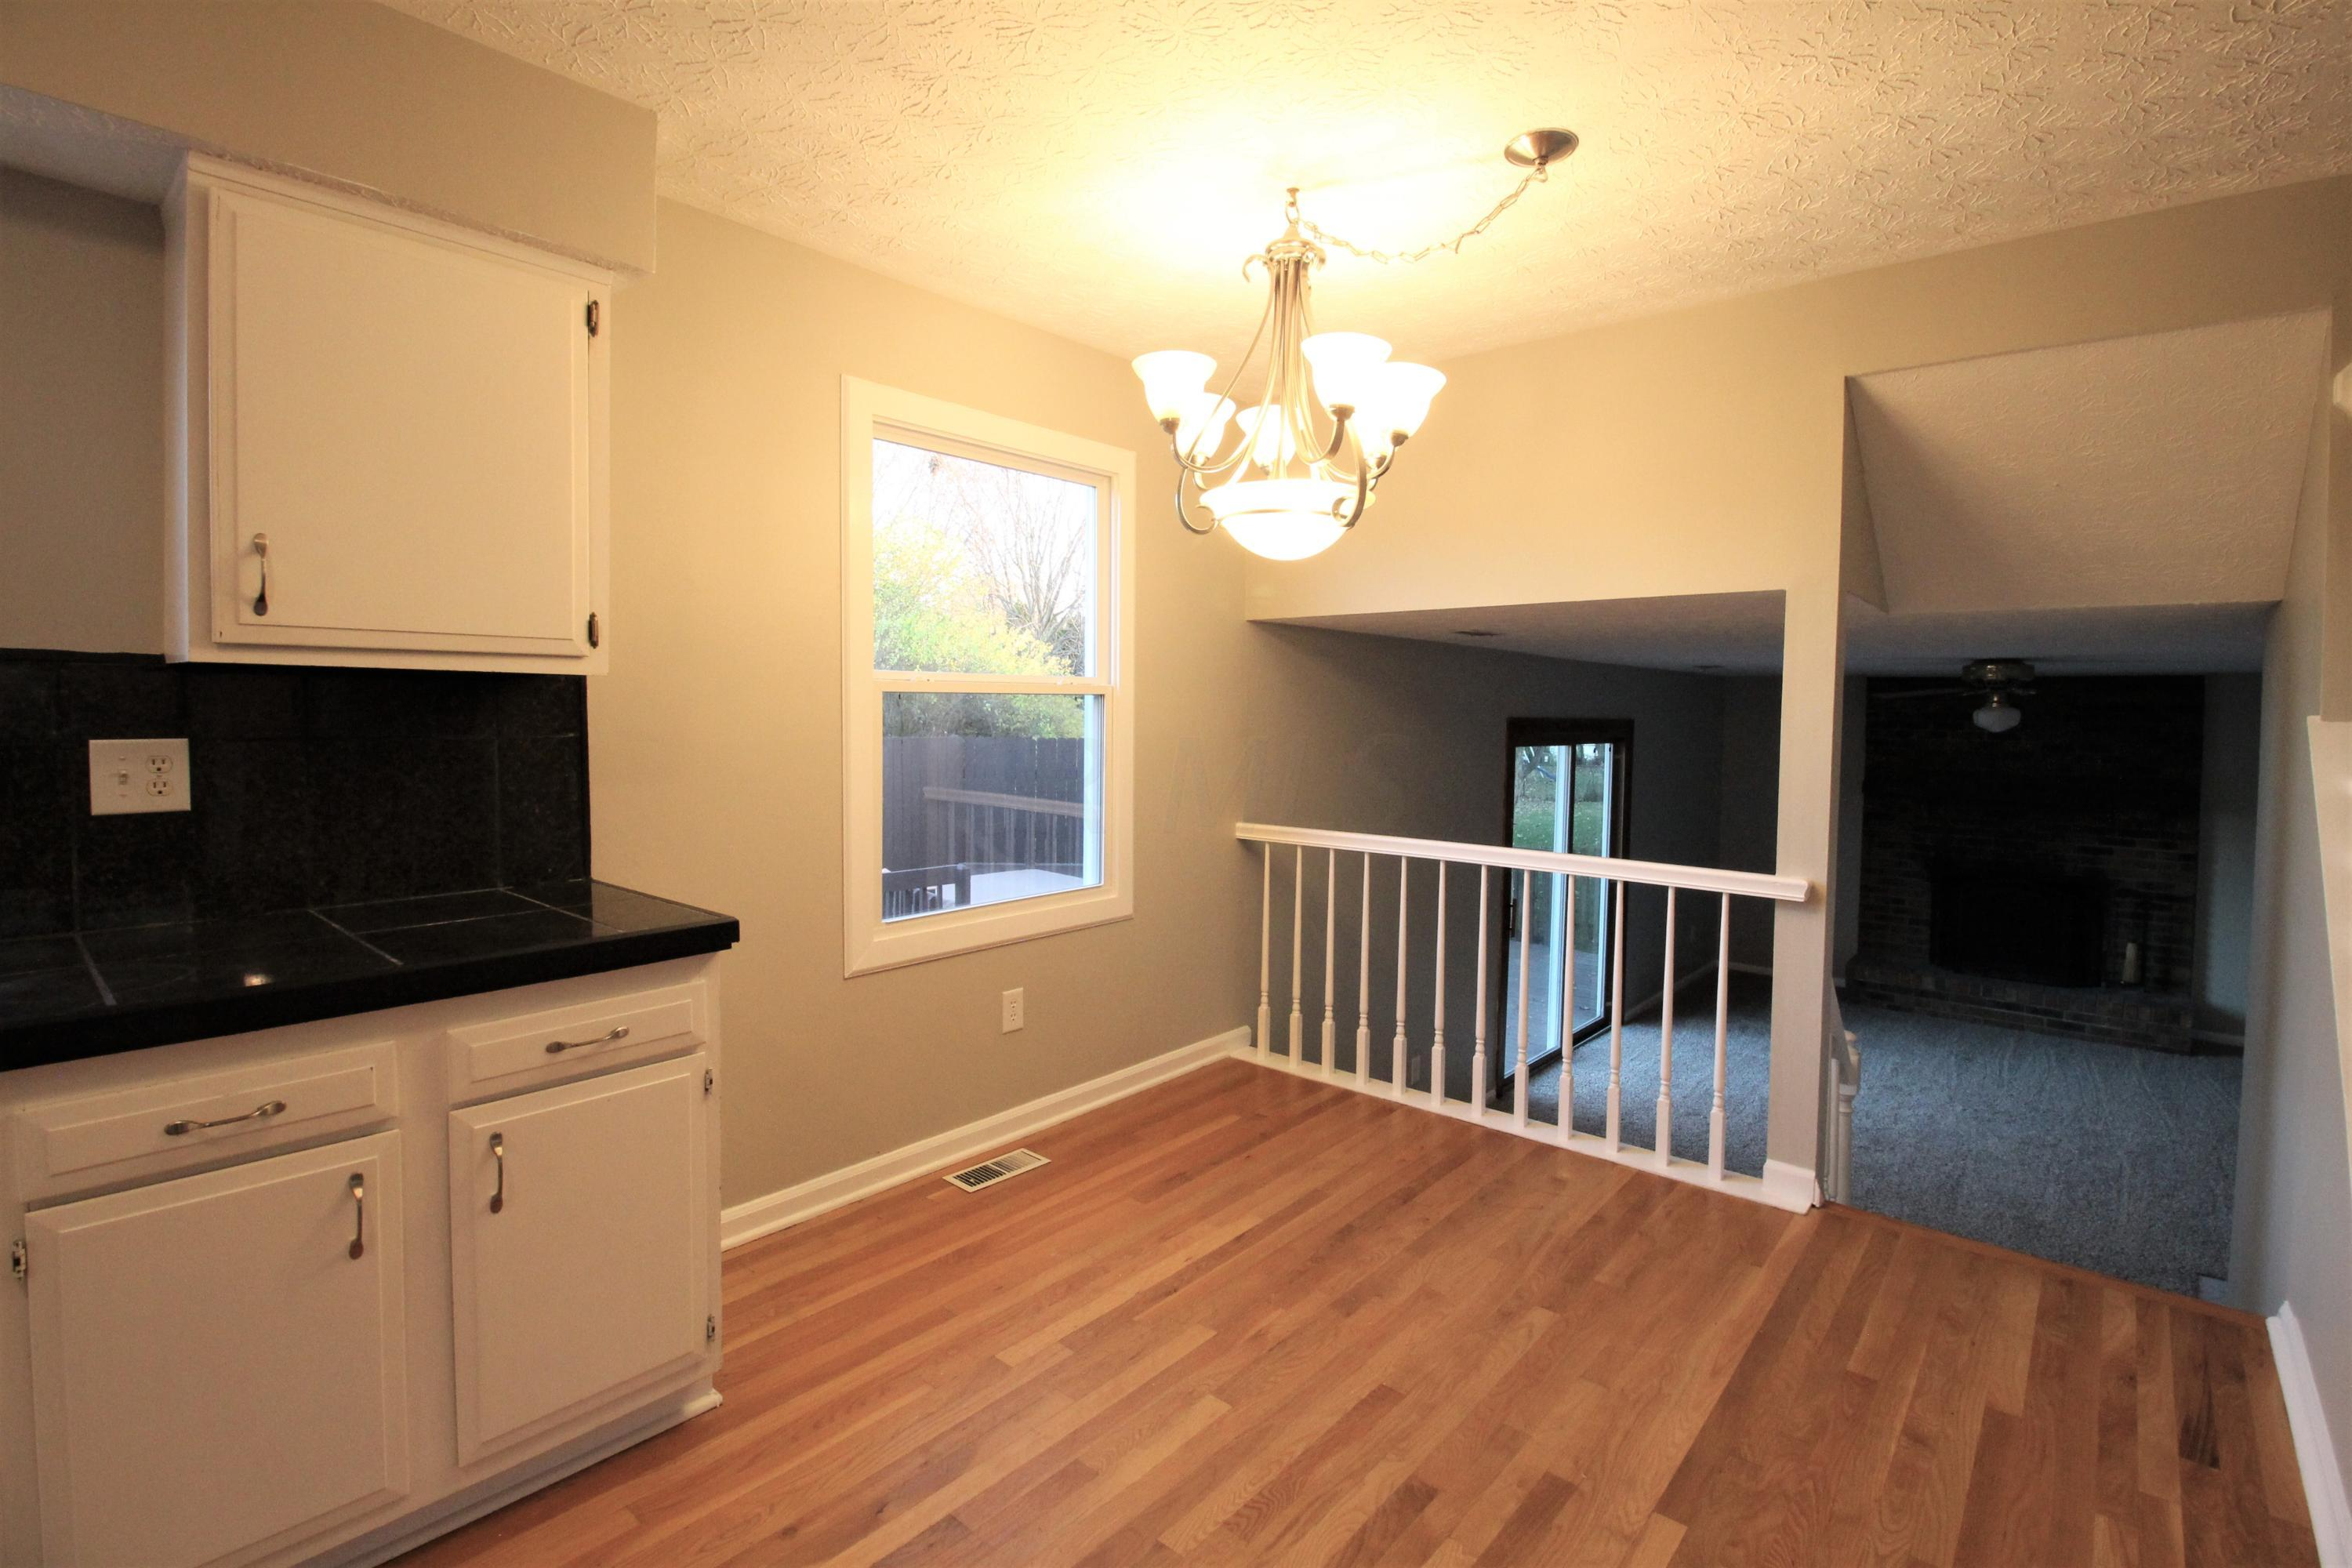 1400 Marchfield Way, Columbus, Ohio 43204, 3 Bedrooms Bedrooms, ,3 BathroomsBathrooms,Residential,For Sale,Marchfield,220040321